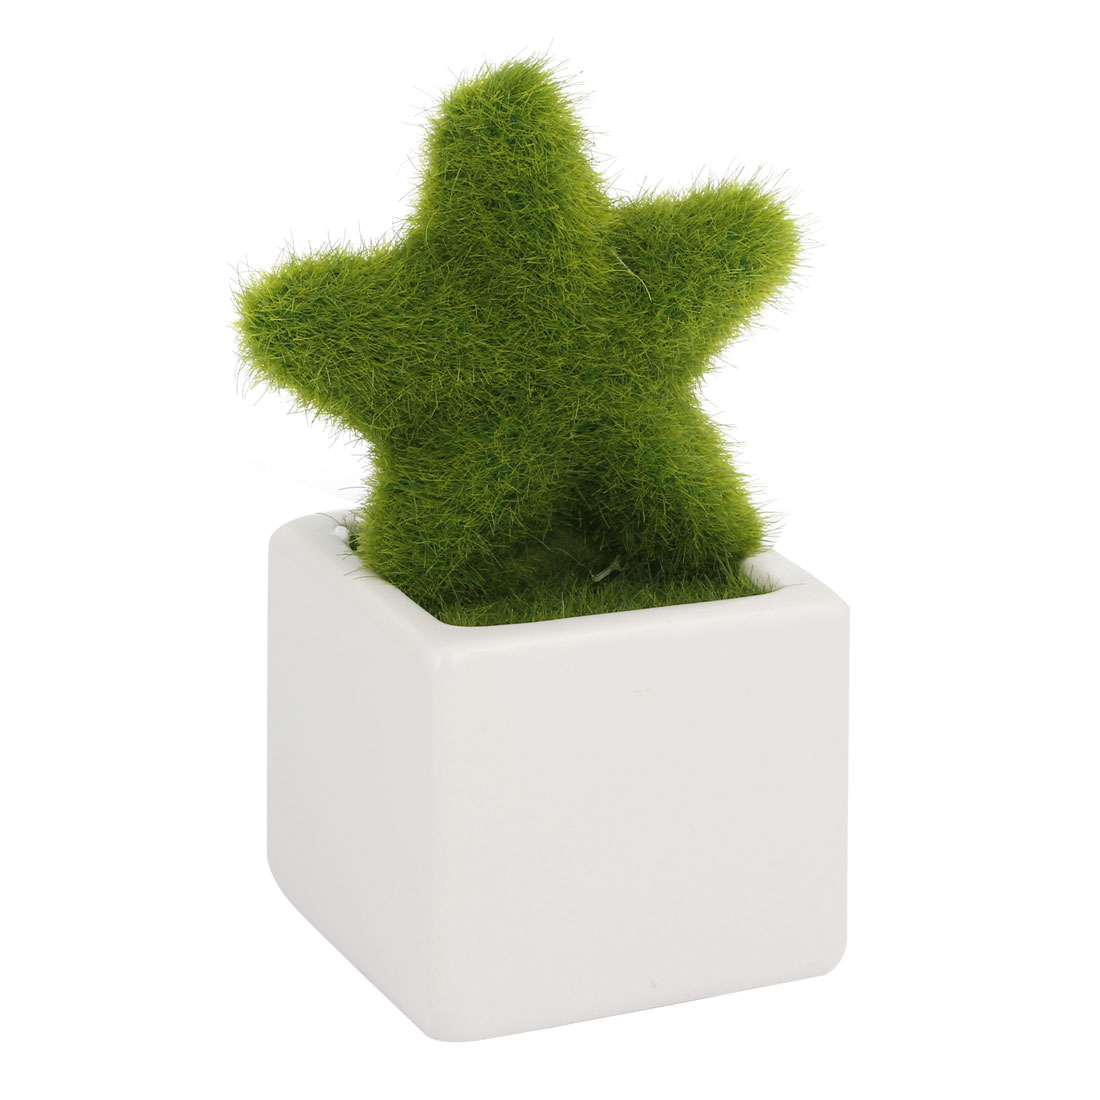 Home Office Table Ornamental Plastic Star Shaped Plant Pot Bonsai